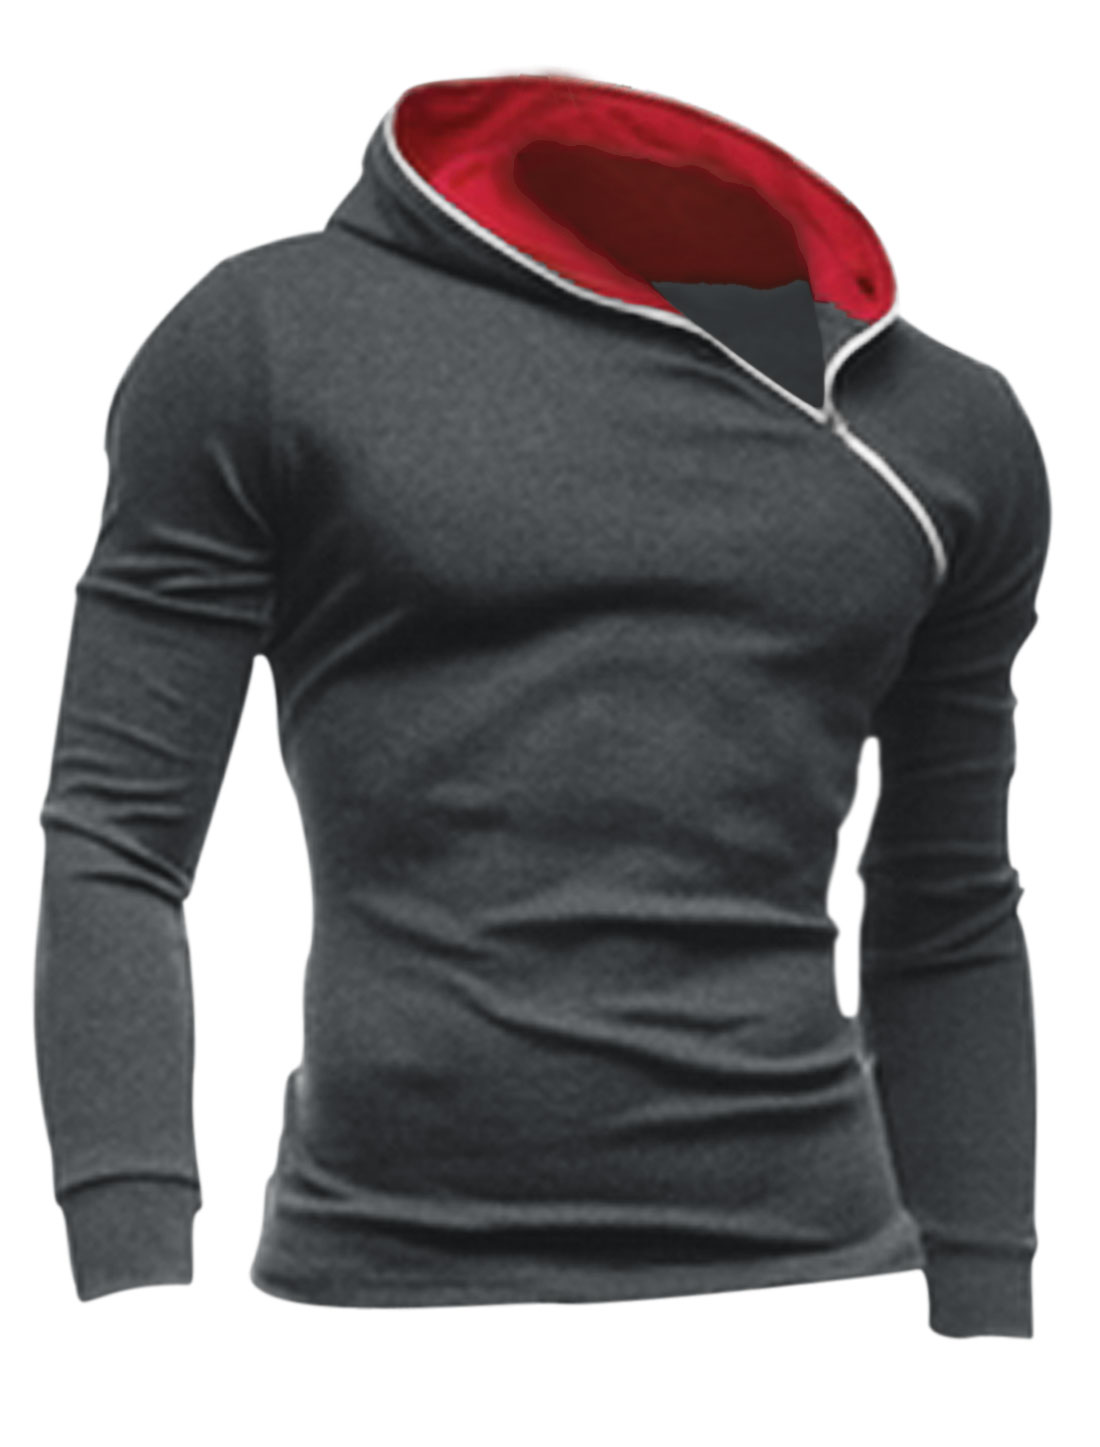 Men Casual Inclined Zipper Hooded Sweatshirt Dark Gray M